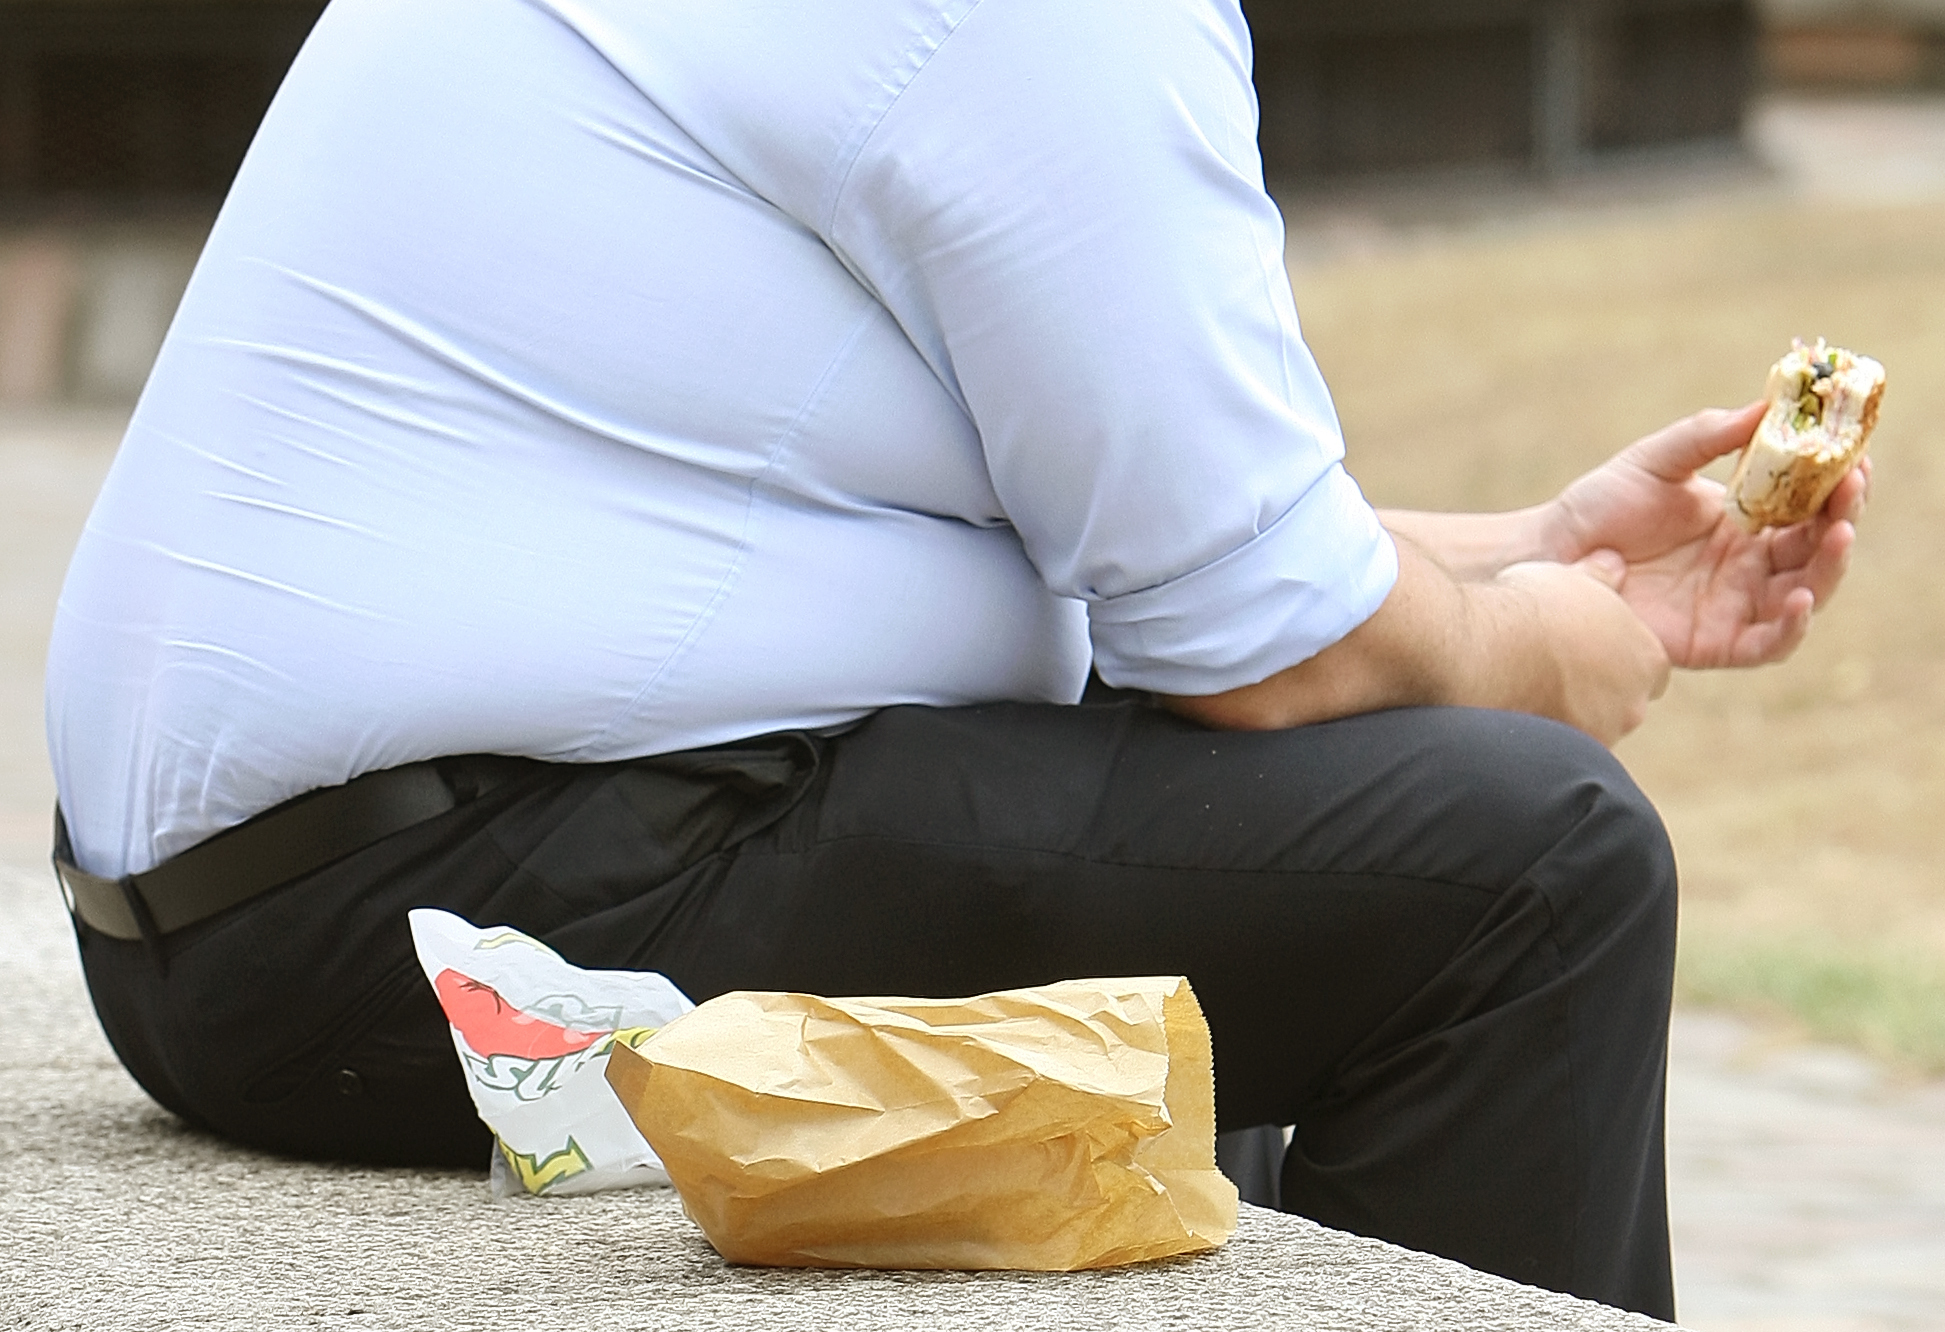 Obese and overweight asked to